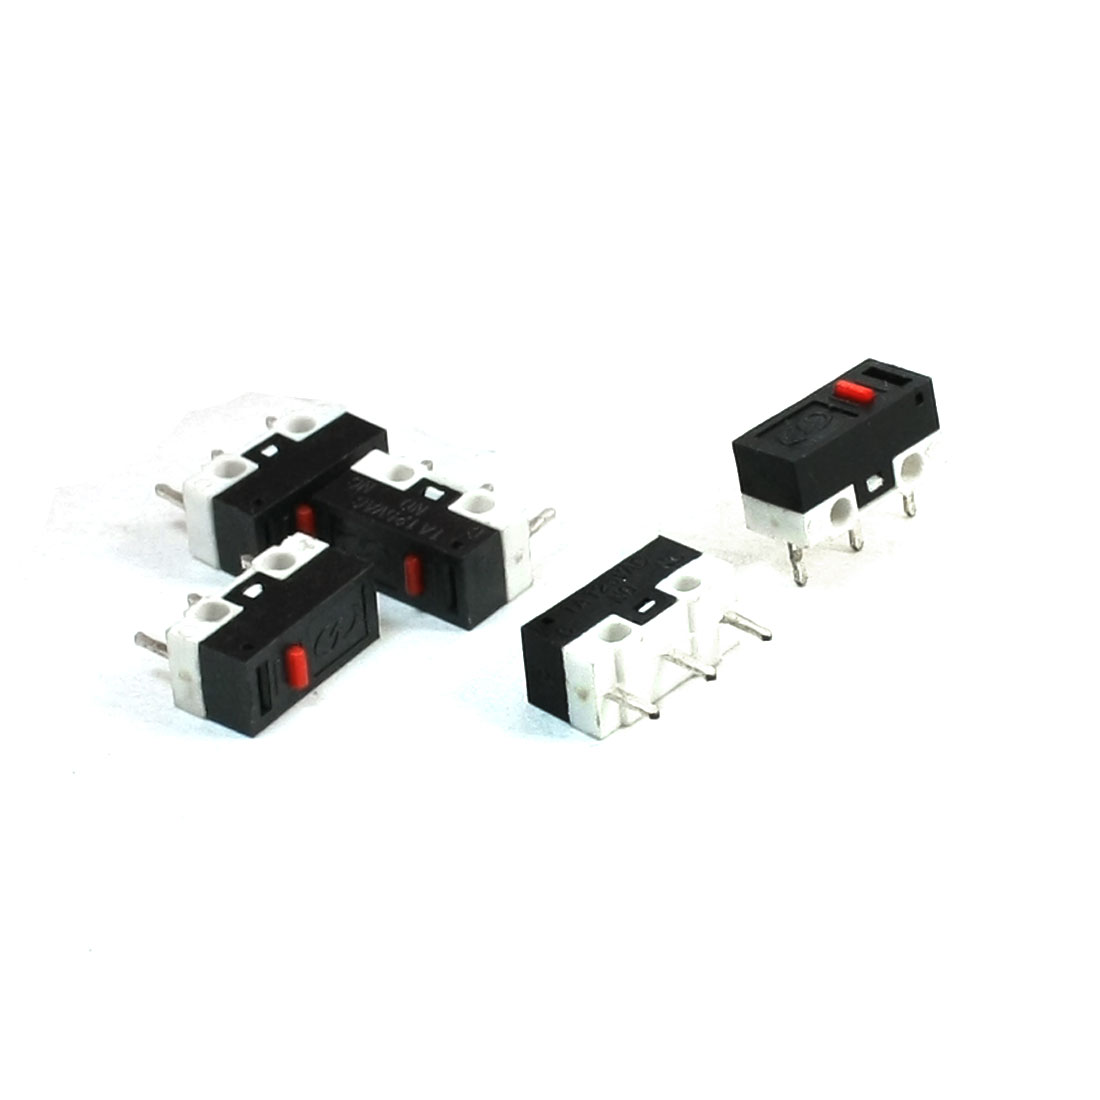 Push Button Type SPDT 1NO 1NC Momentary Micro Switch for Mouse 5 Pcs